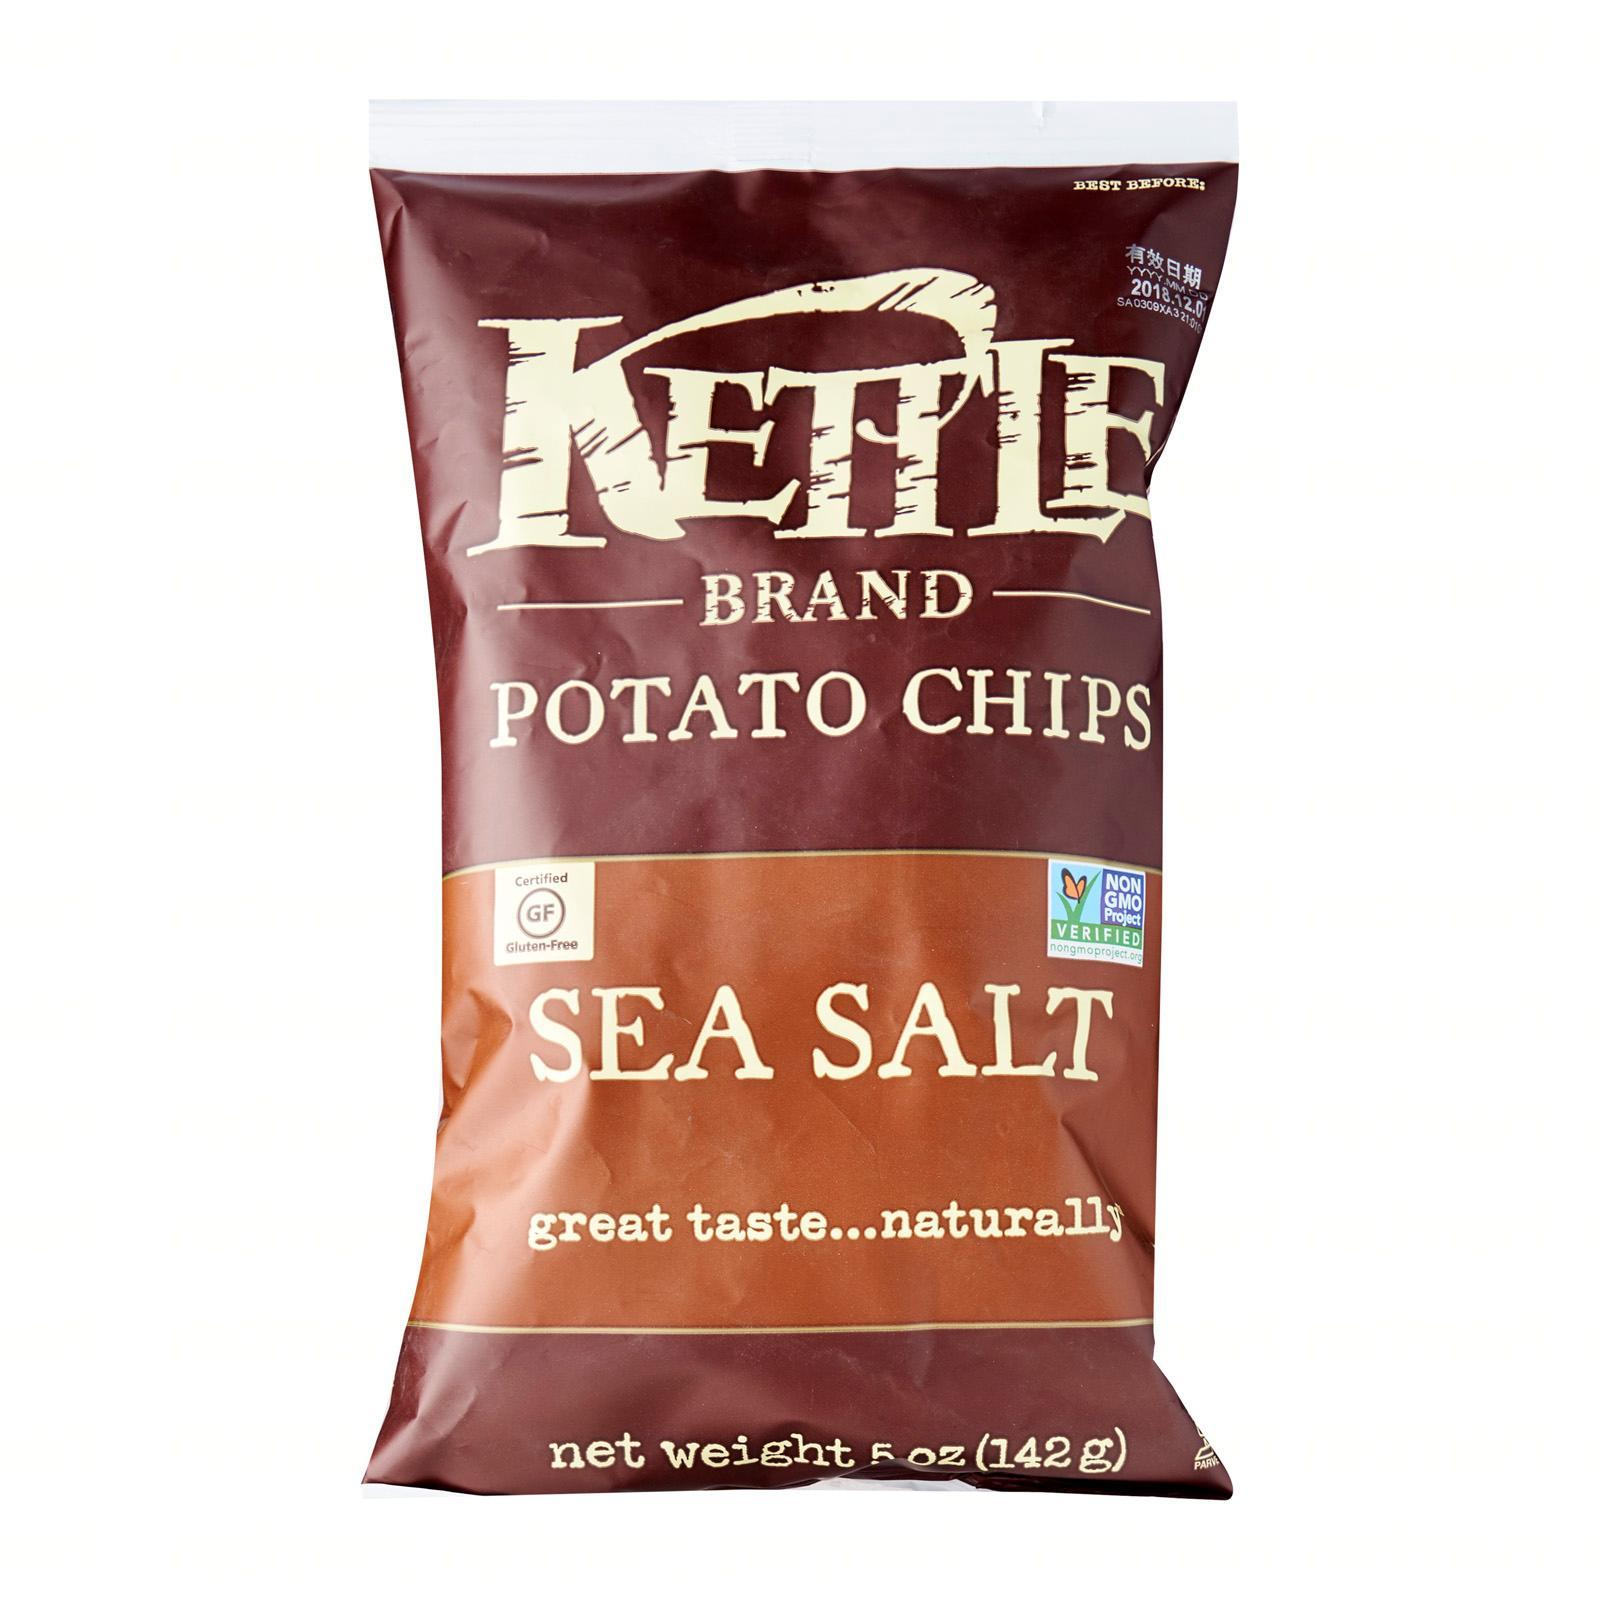 KETTLE Potato Chips Sea Salt 142g